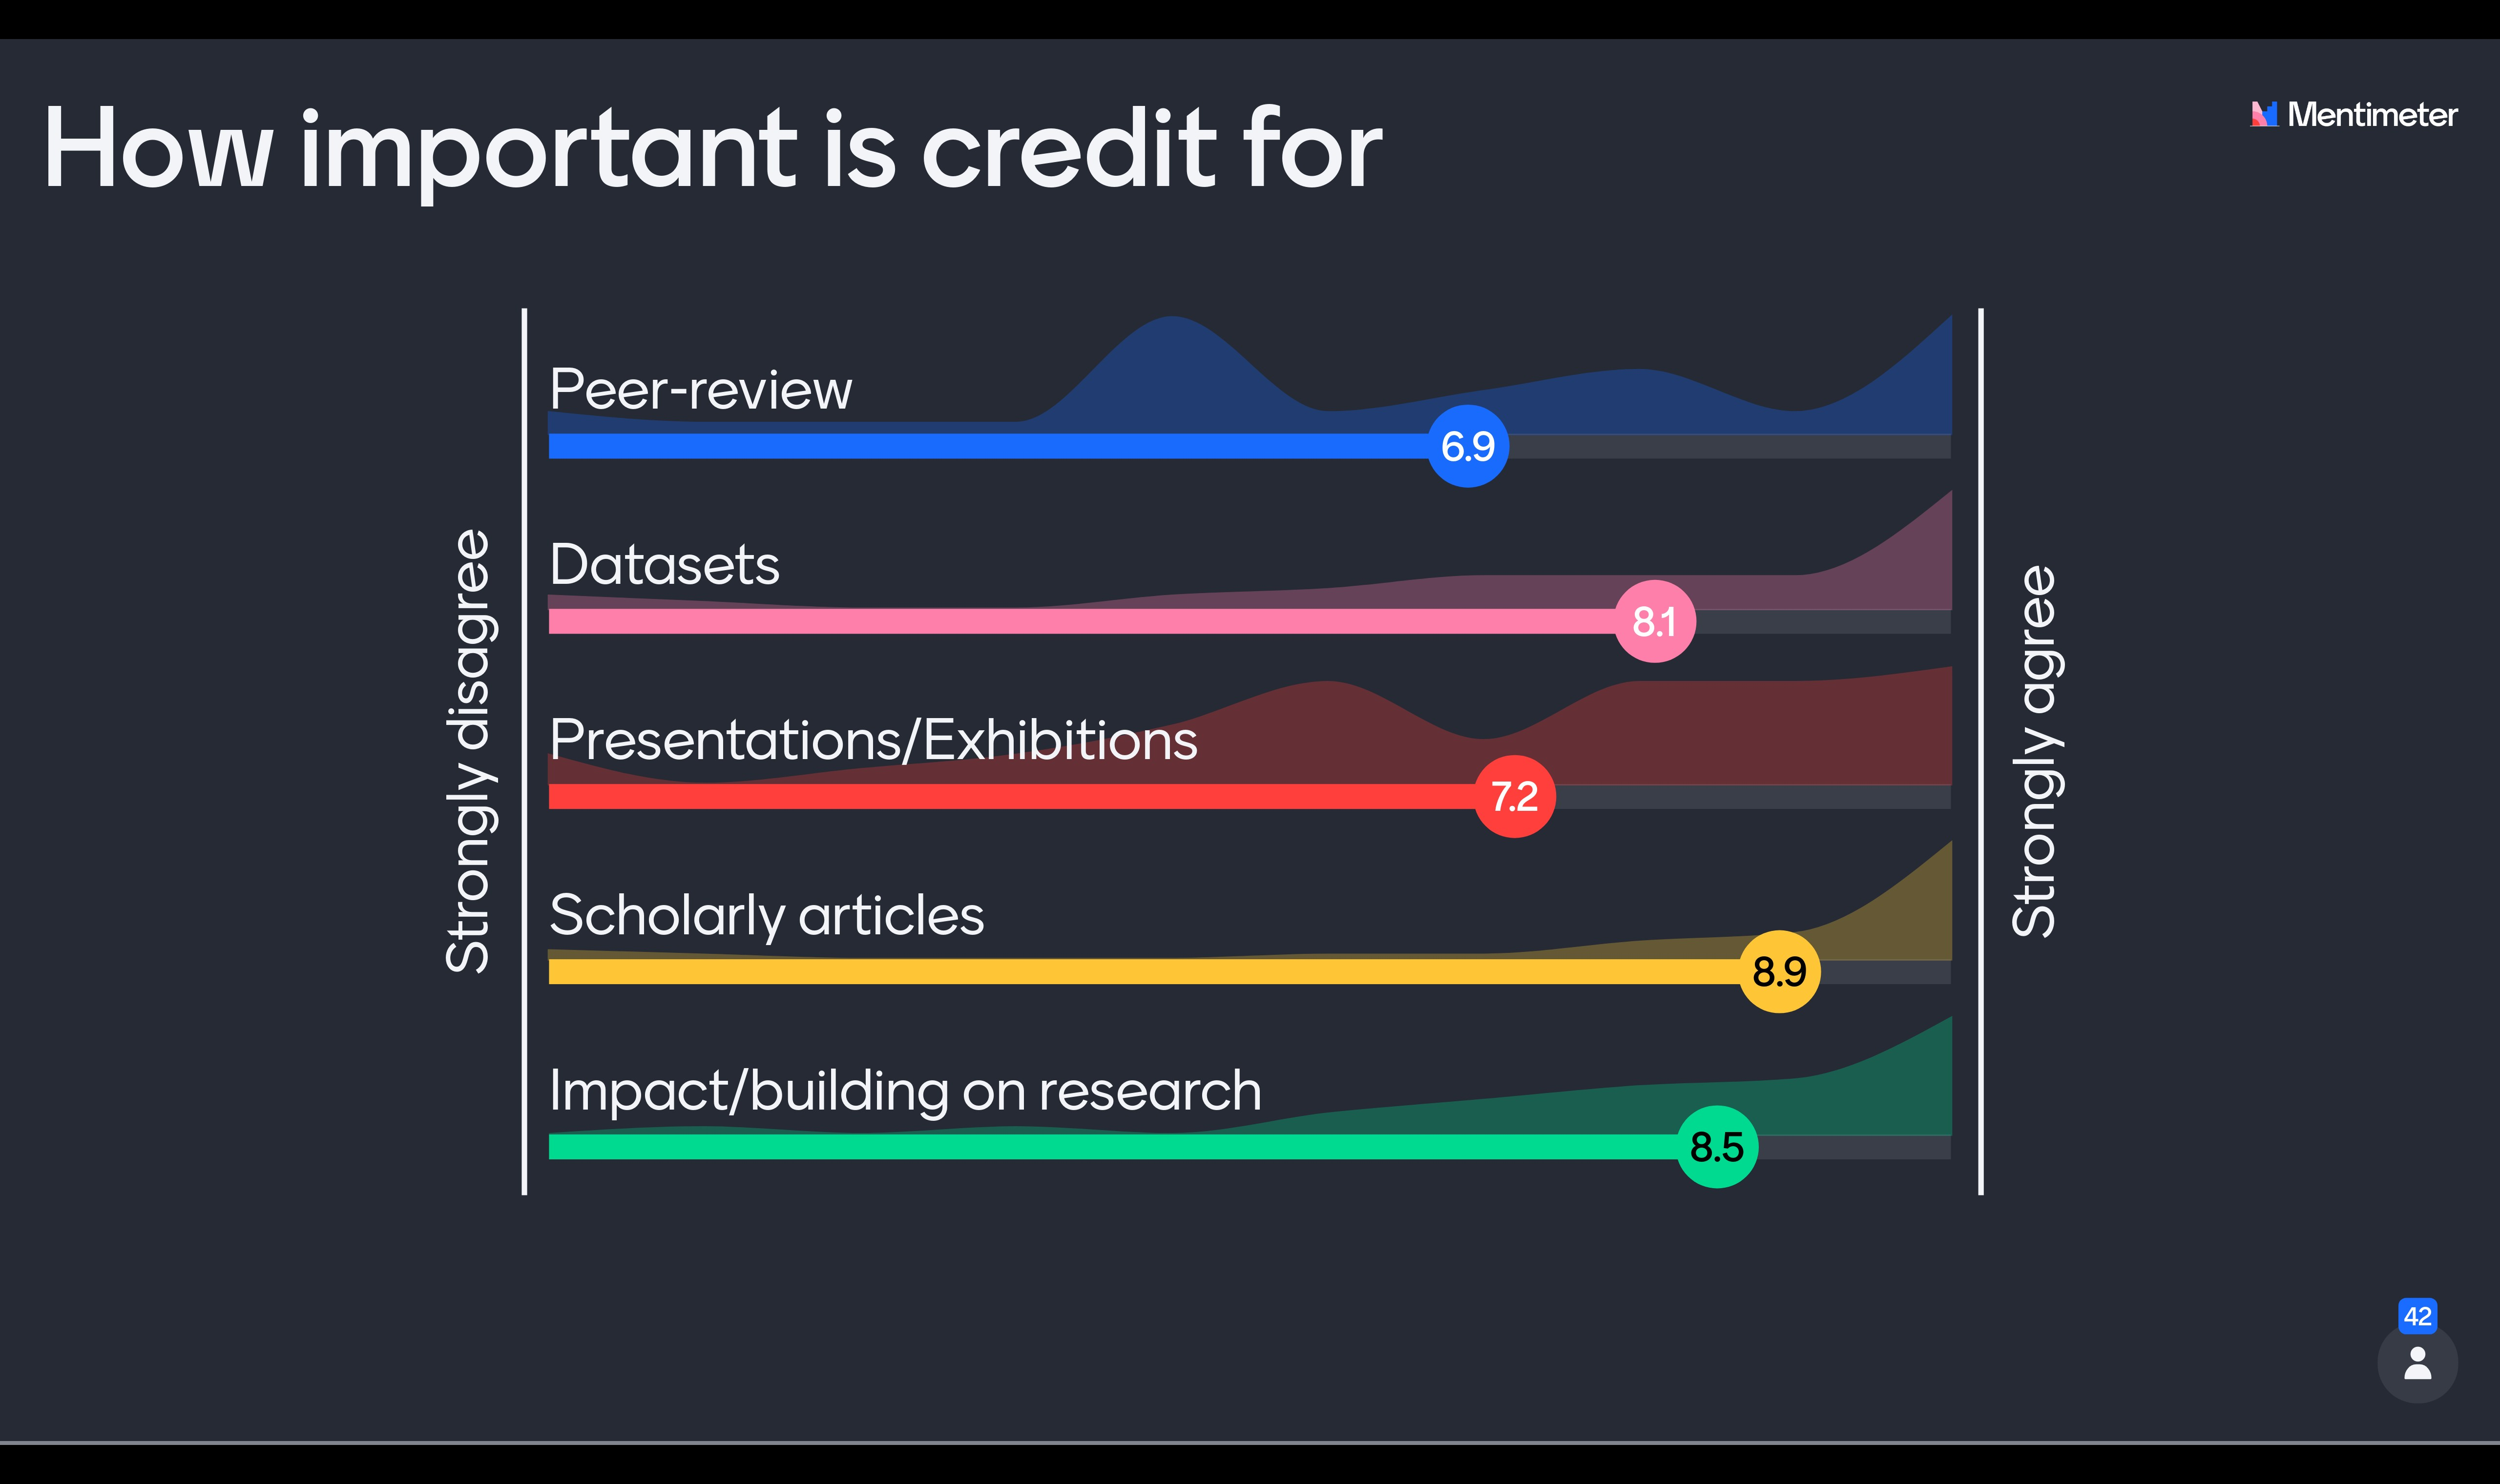 Graph showing how important credit is